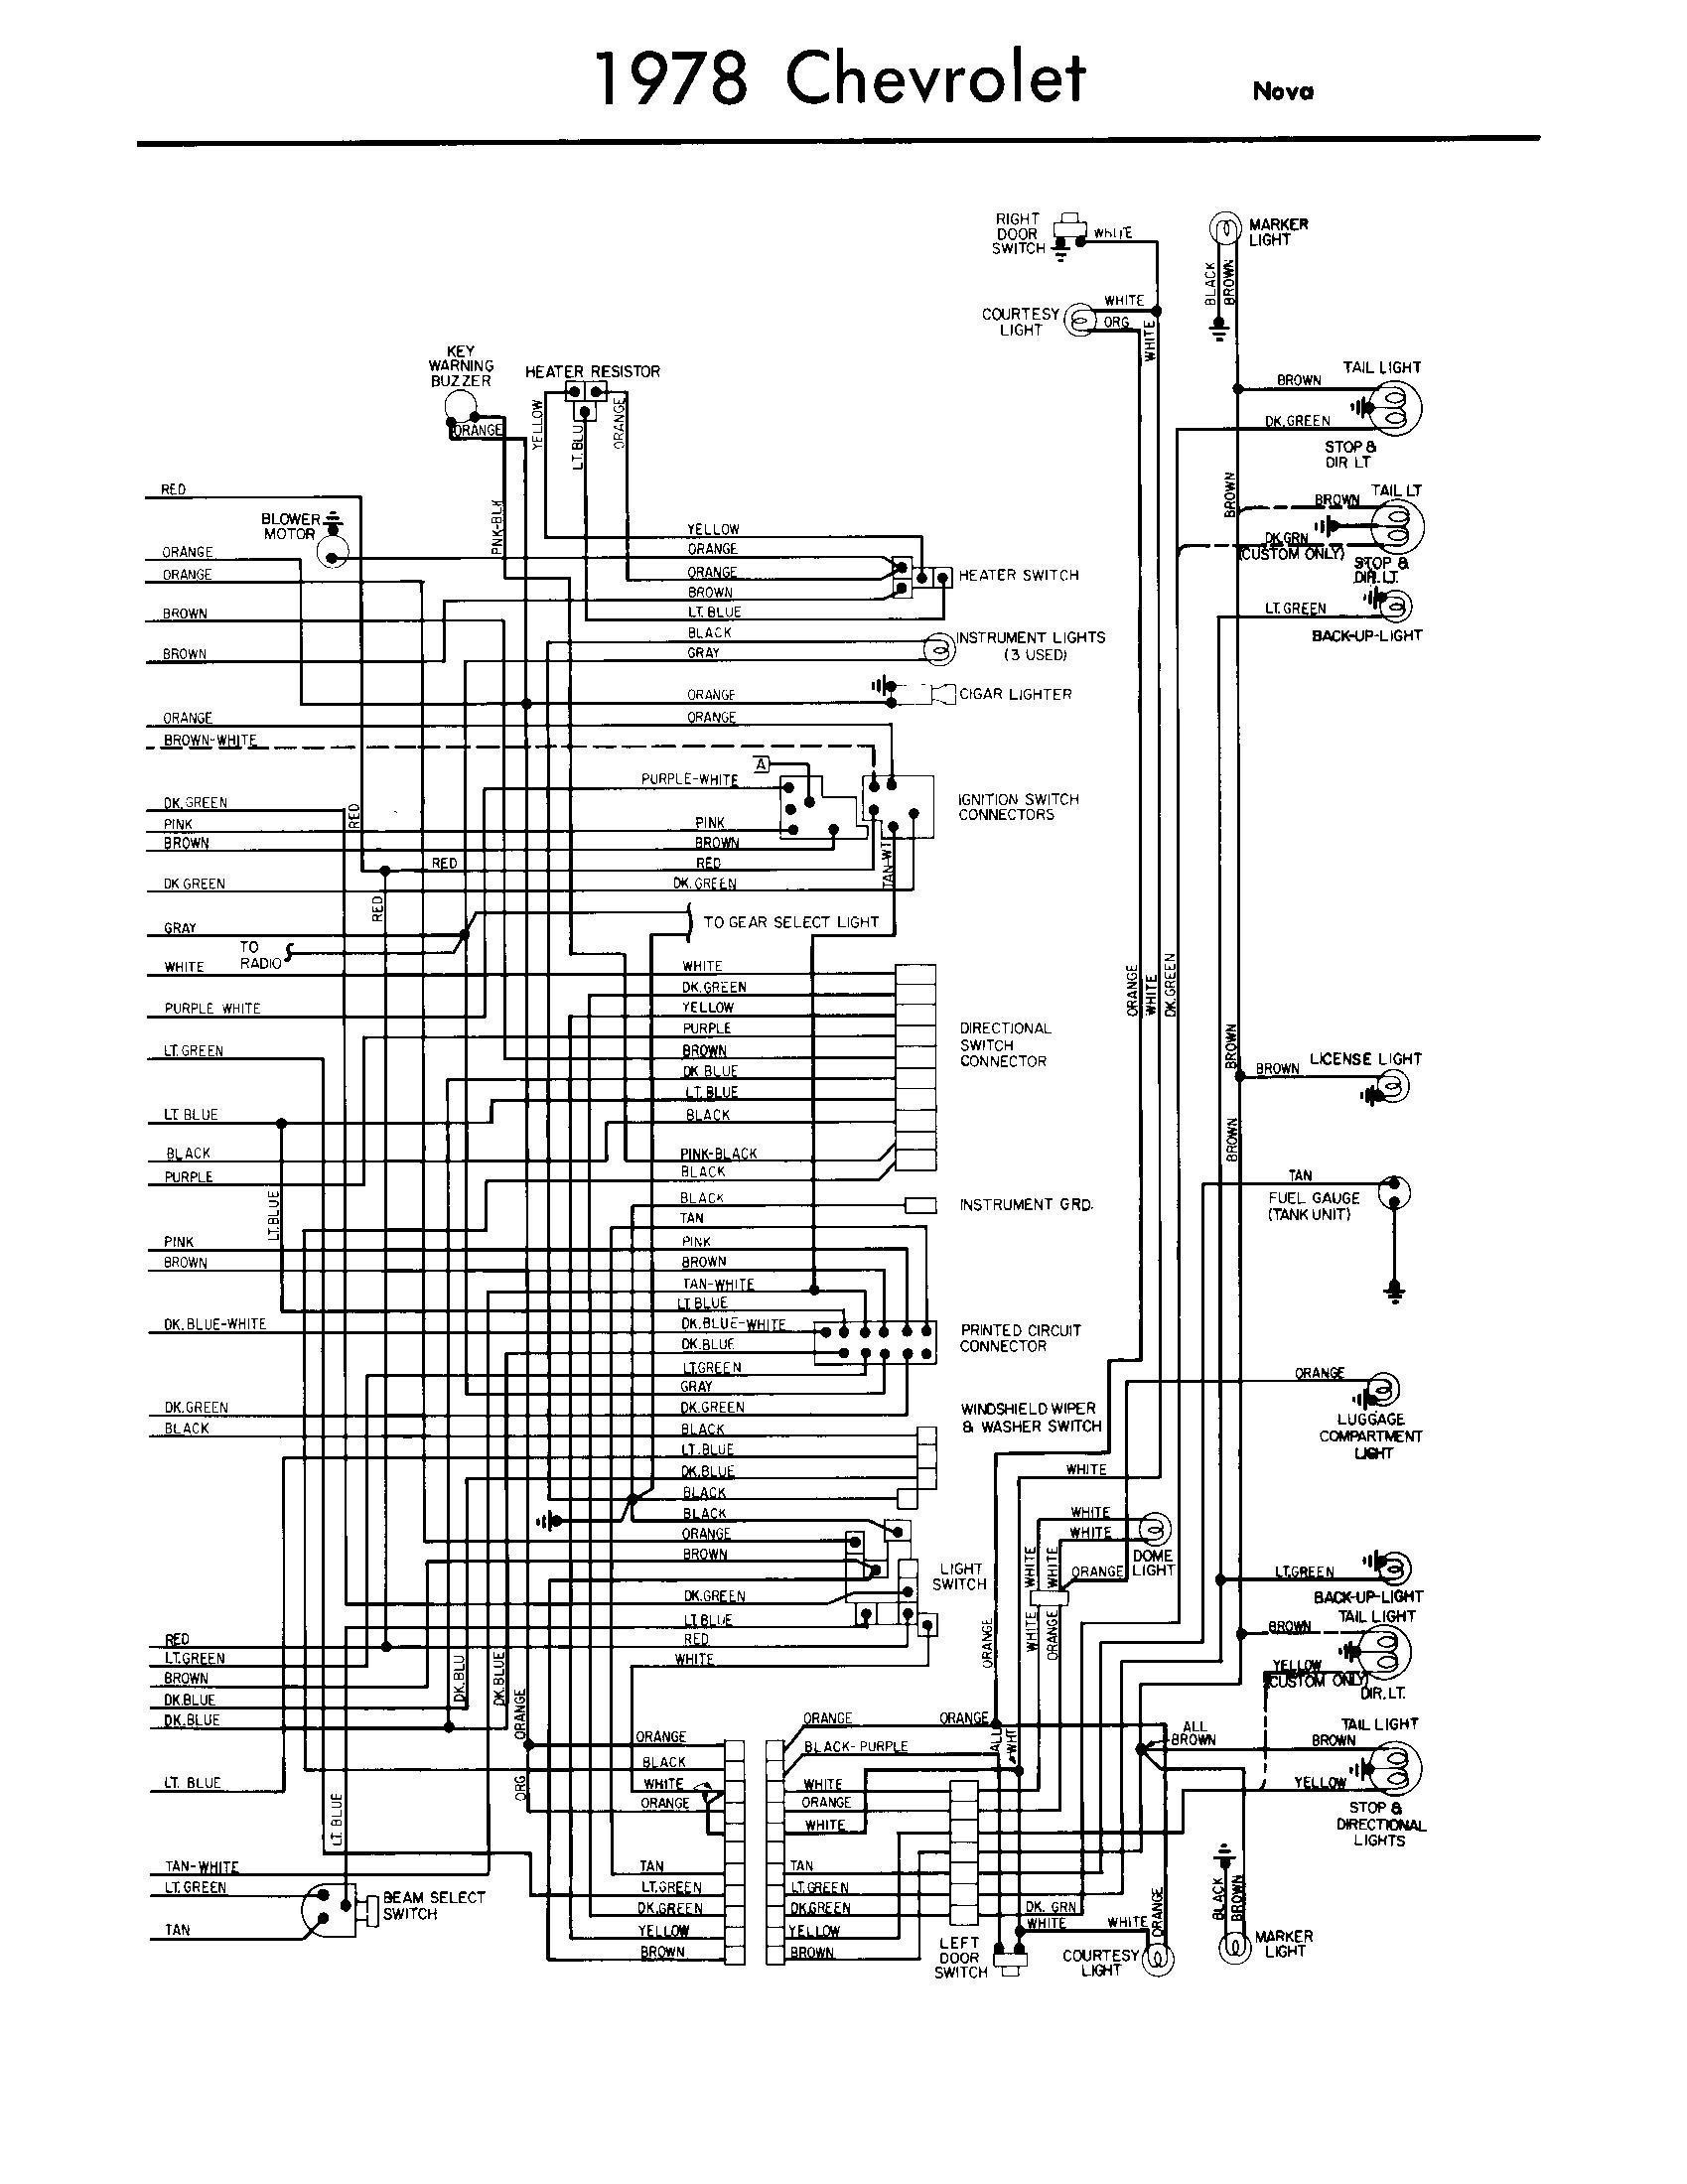 Chevrolet Truck Wiring Diagrams 83 Chevy Truck Wiring Diagram Wiring Diagram toolbox Of Chevrolet Truck Wiring Diagrams